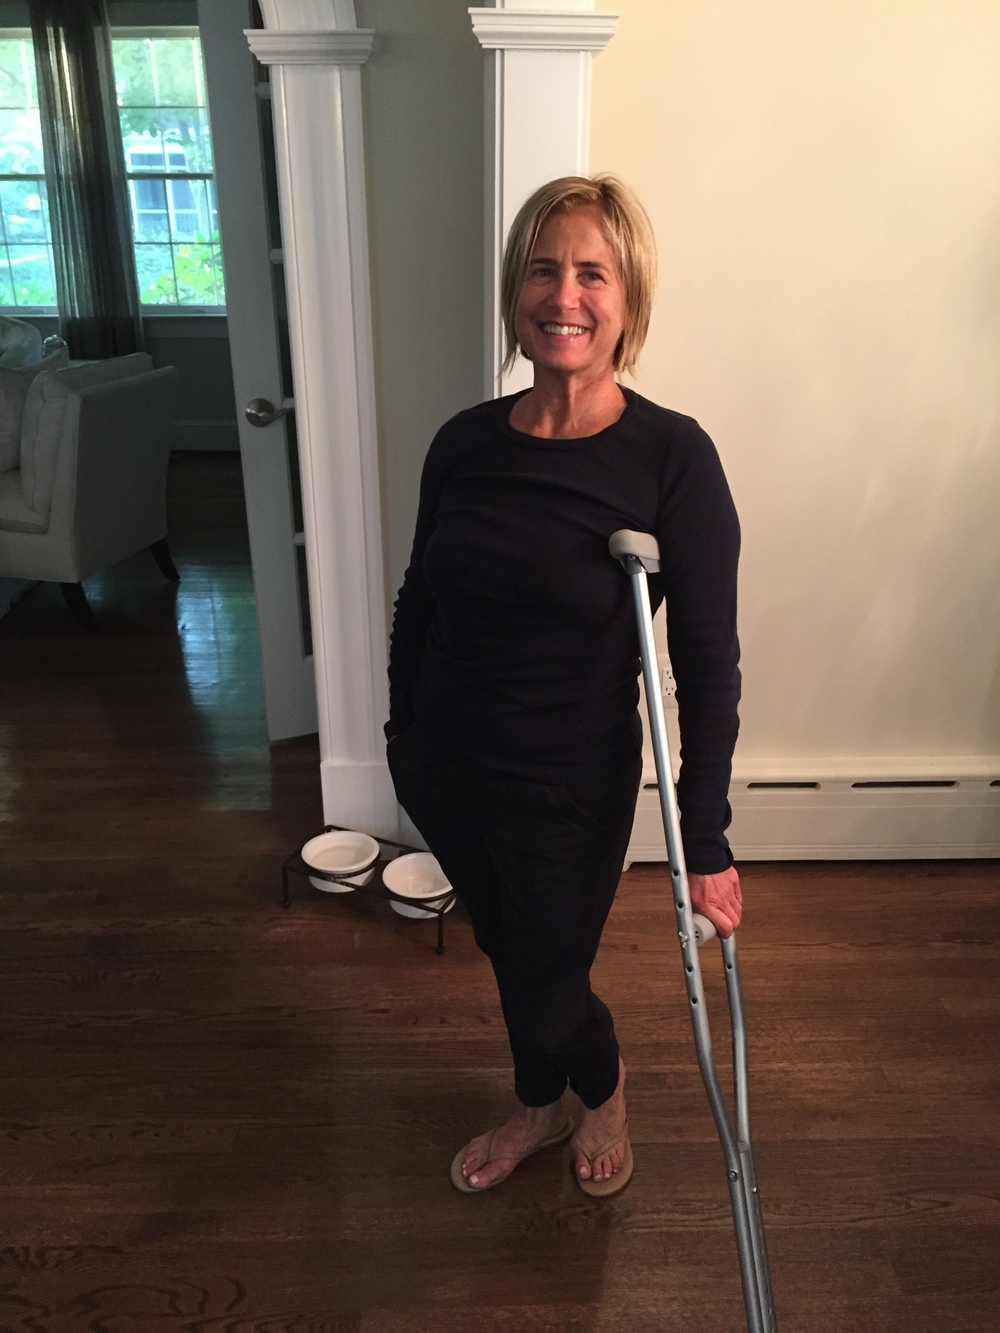 I borrowed one of Adin's crutches because I couldn't put weight on my left leg after getting an epidural steroid block injected into my lower spine to relieve my ridiculous glute pain. Today I am pain free and walking fine!